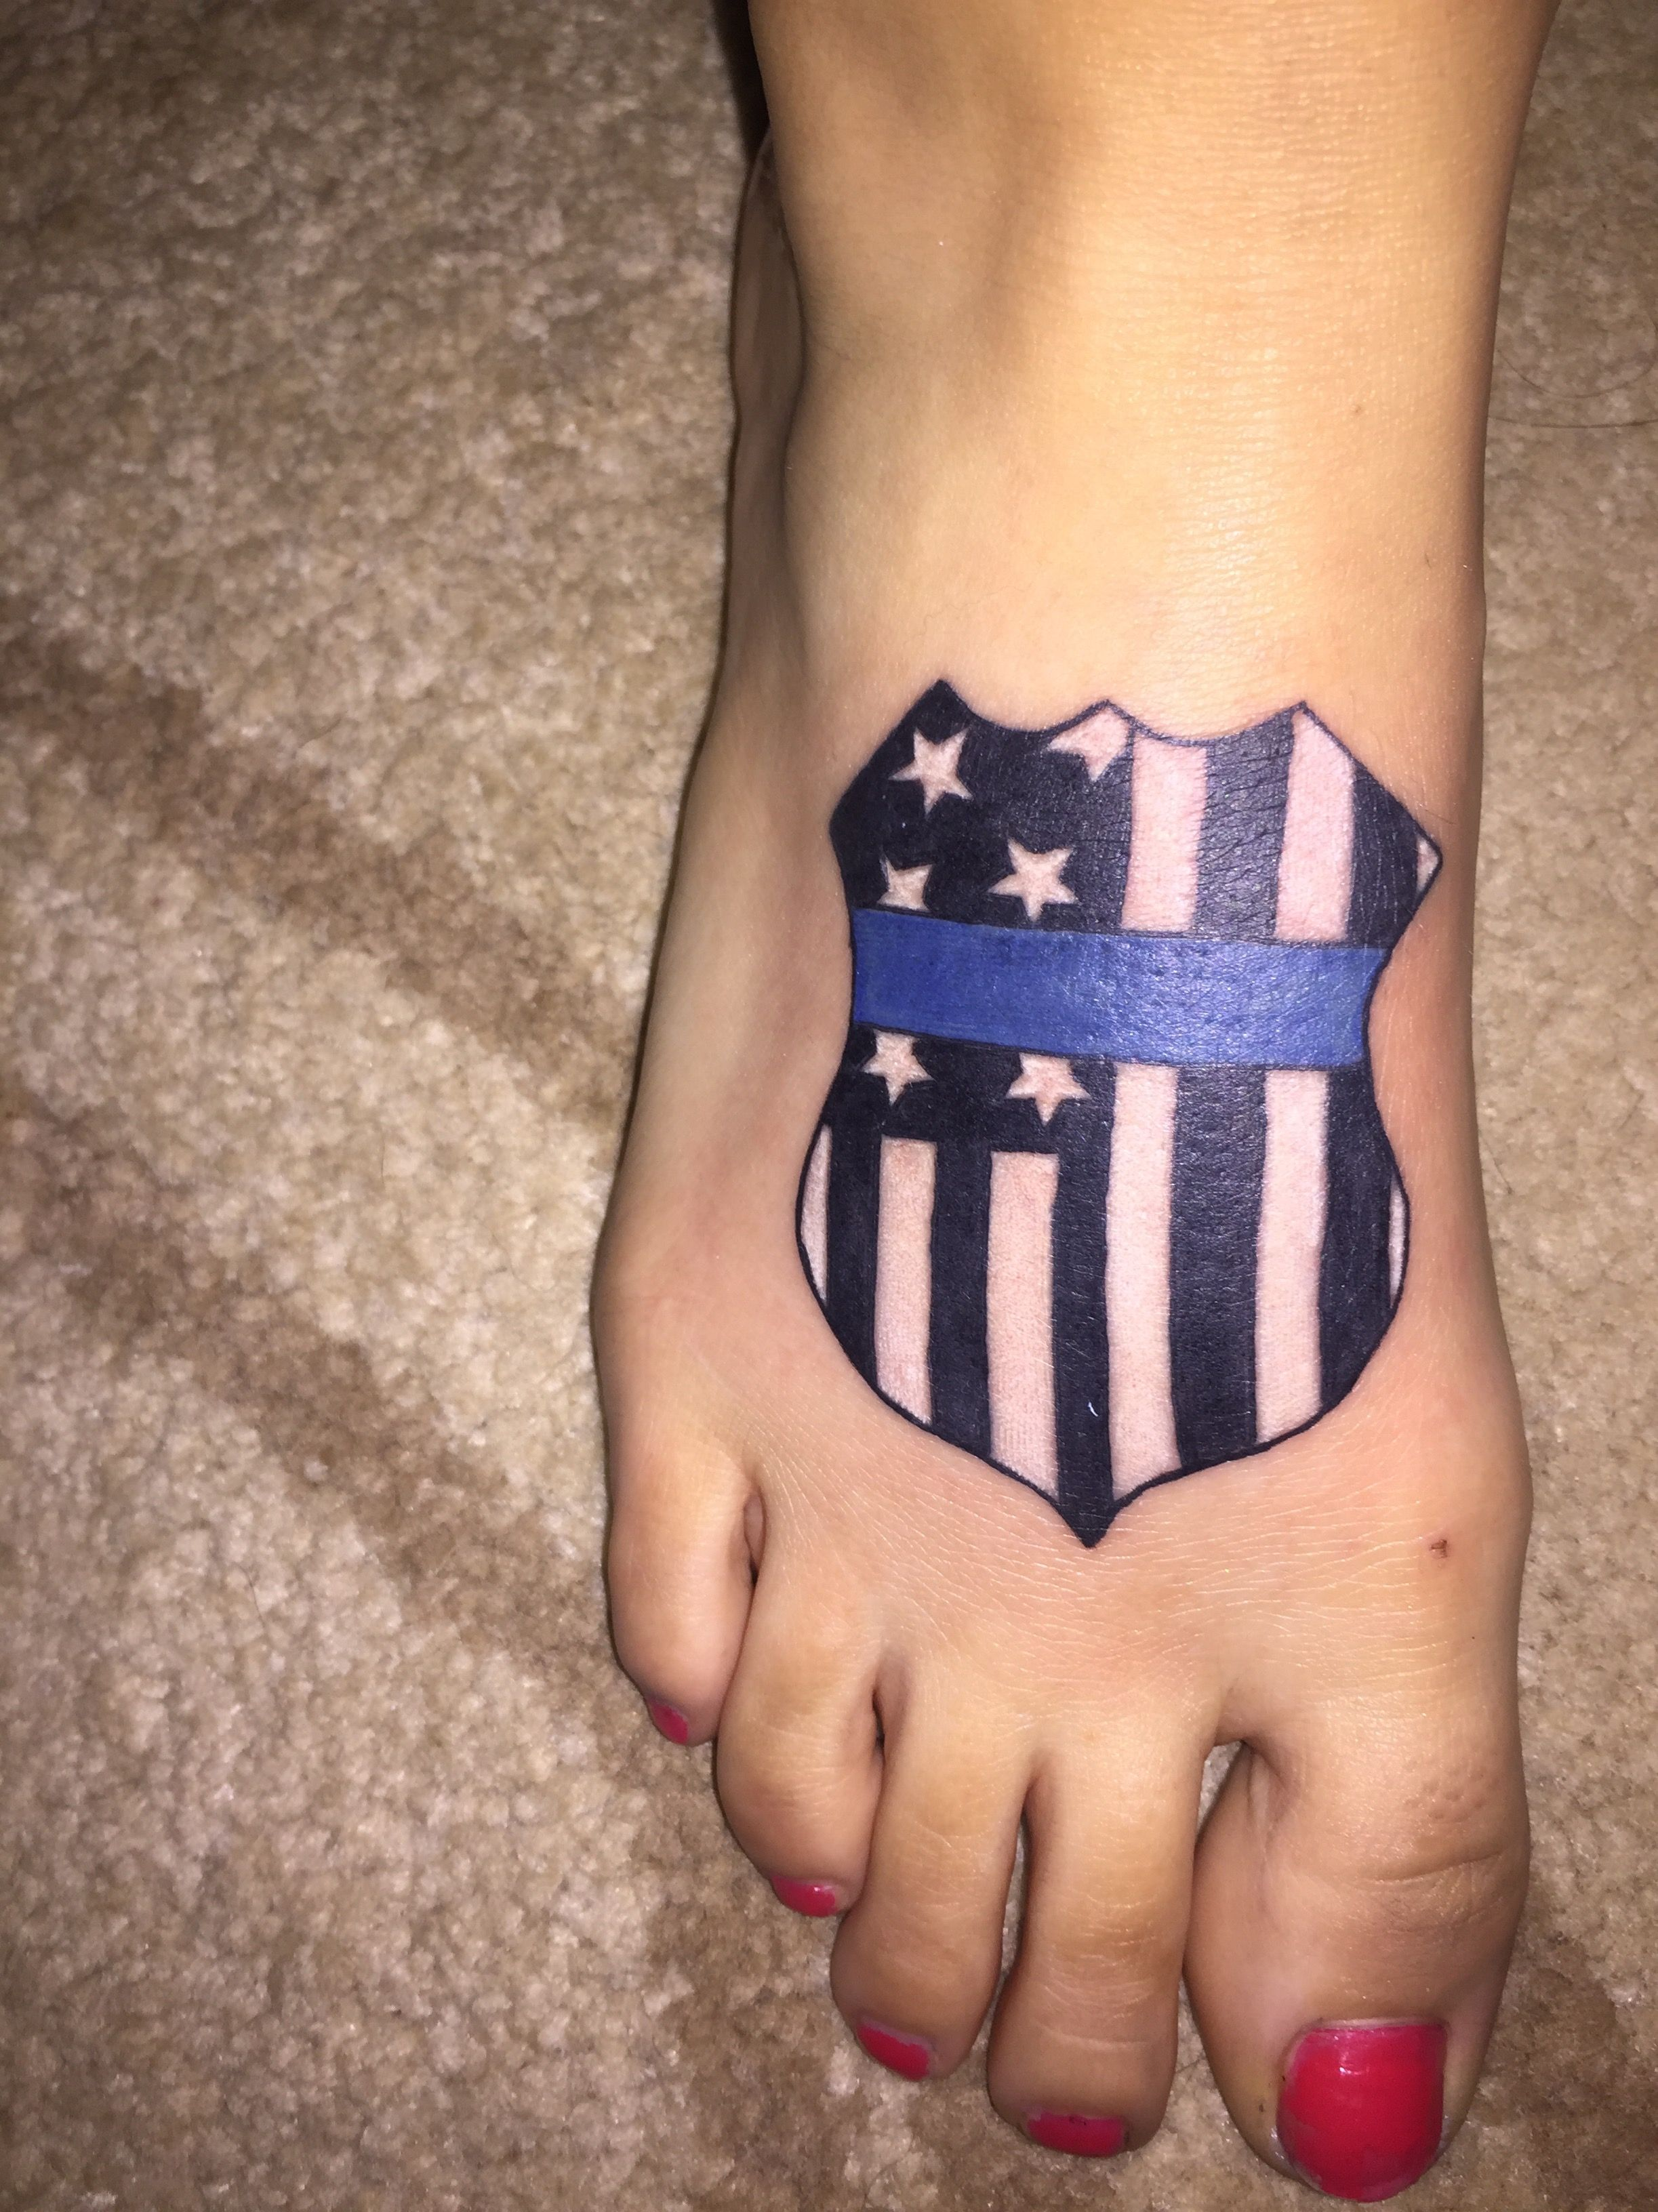 Flaming art tattoo for geek tattoo lovers this kind of batman - Police Wife Tattoo Thin Blue Line